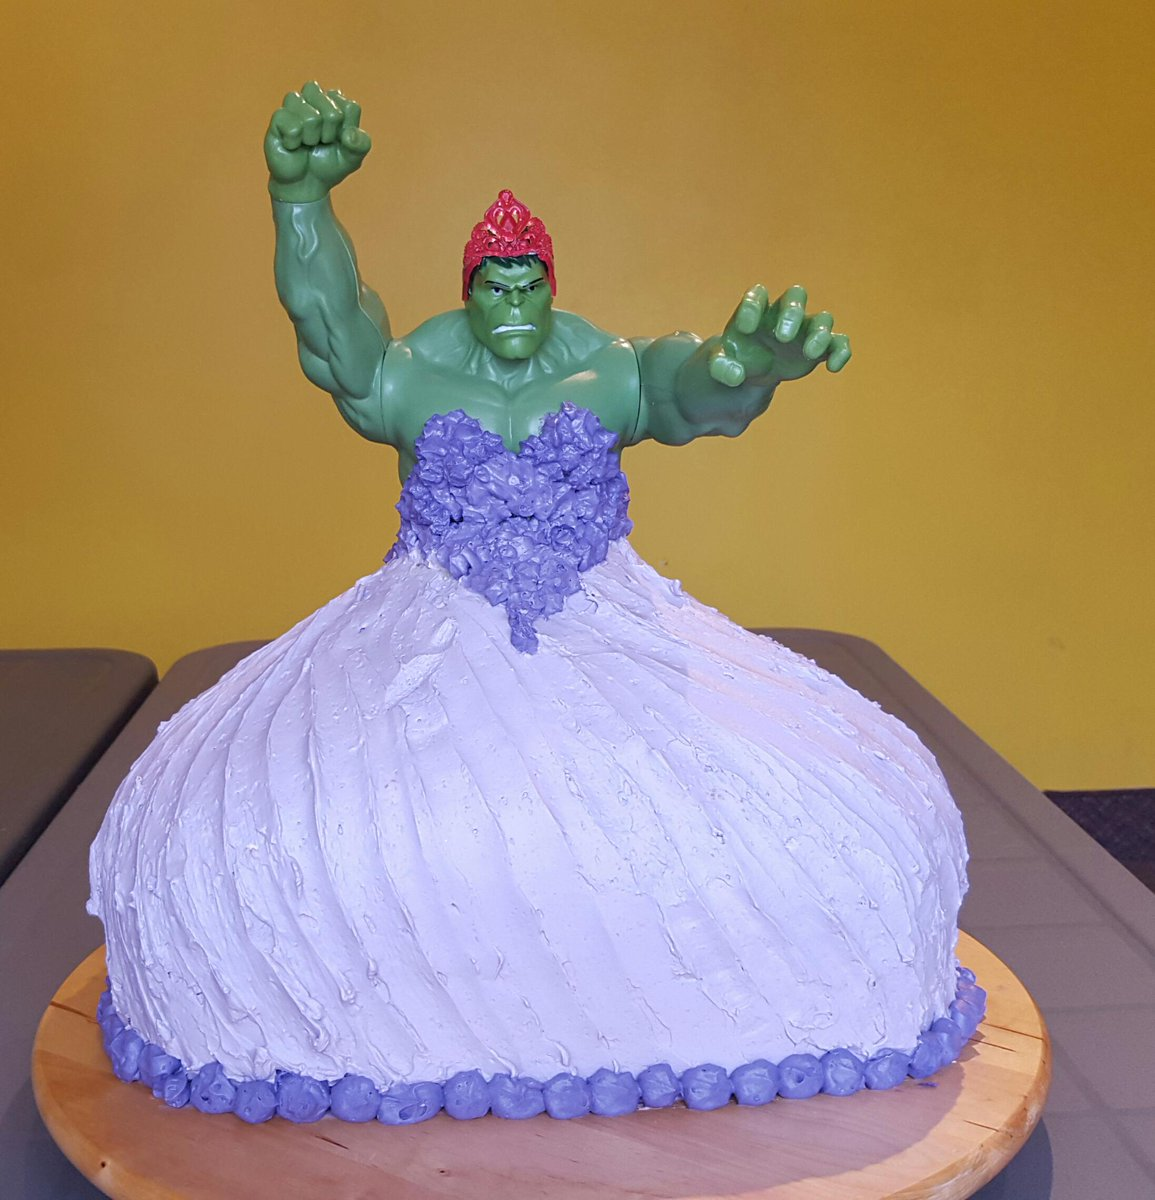 Twin 4yearold girls asked for a hulkprincess birthday cake and